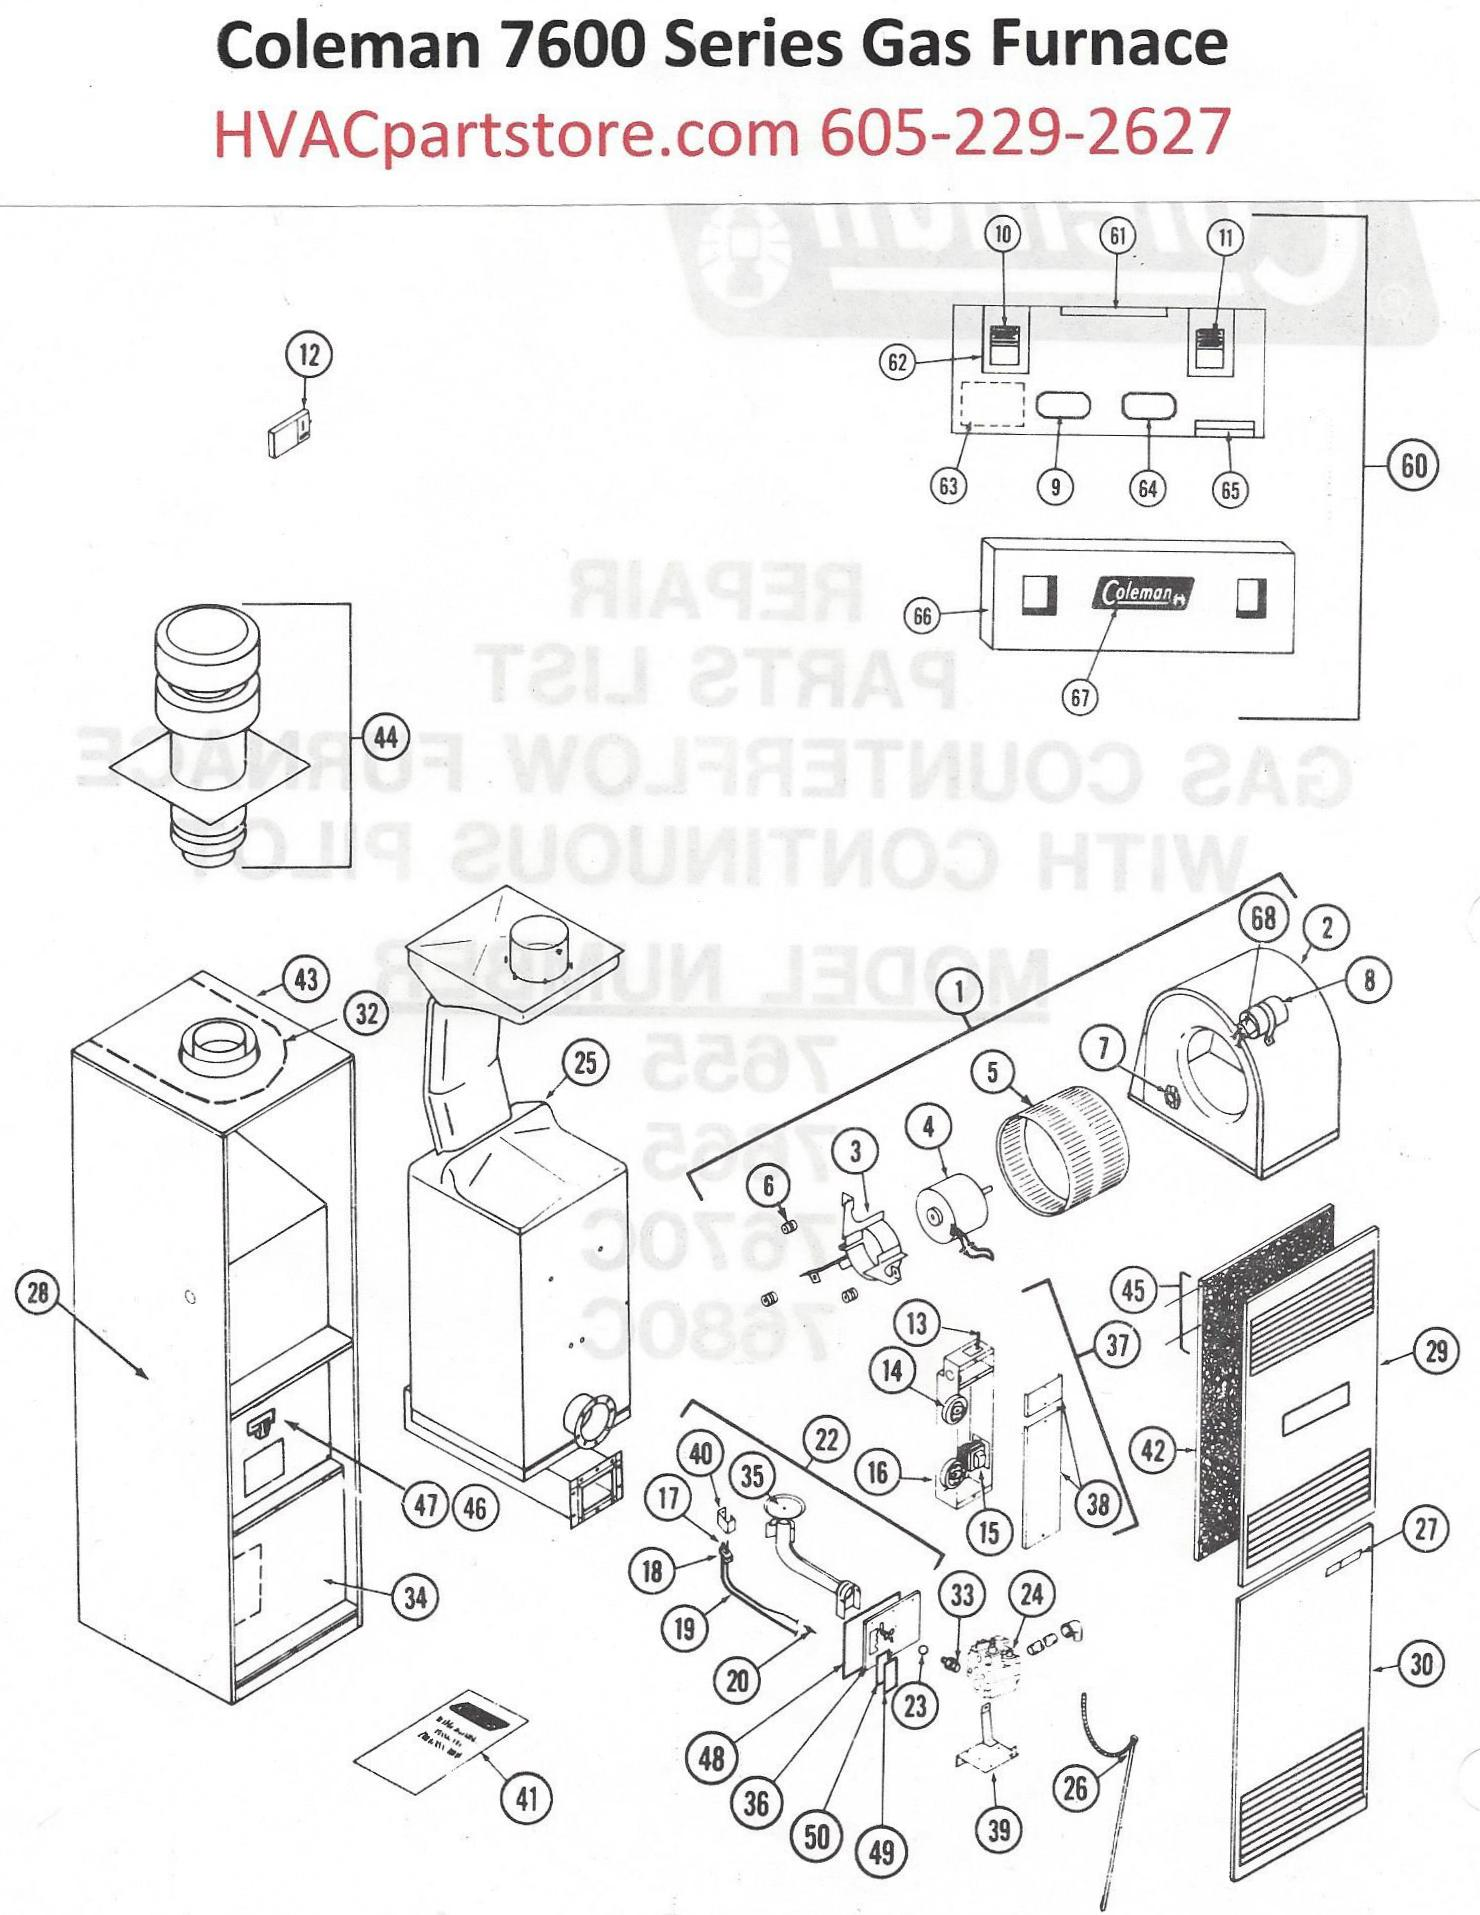 7655 7665Diagram_79f56d20 d331 4db2 9cdc 3b162d351c81 coleman gas furnace wiring diagram dolgular com  at readyjetset.co